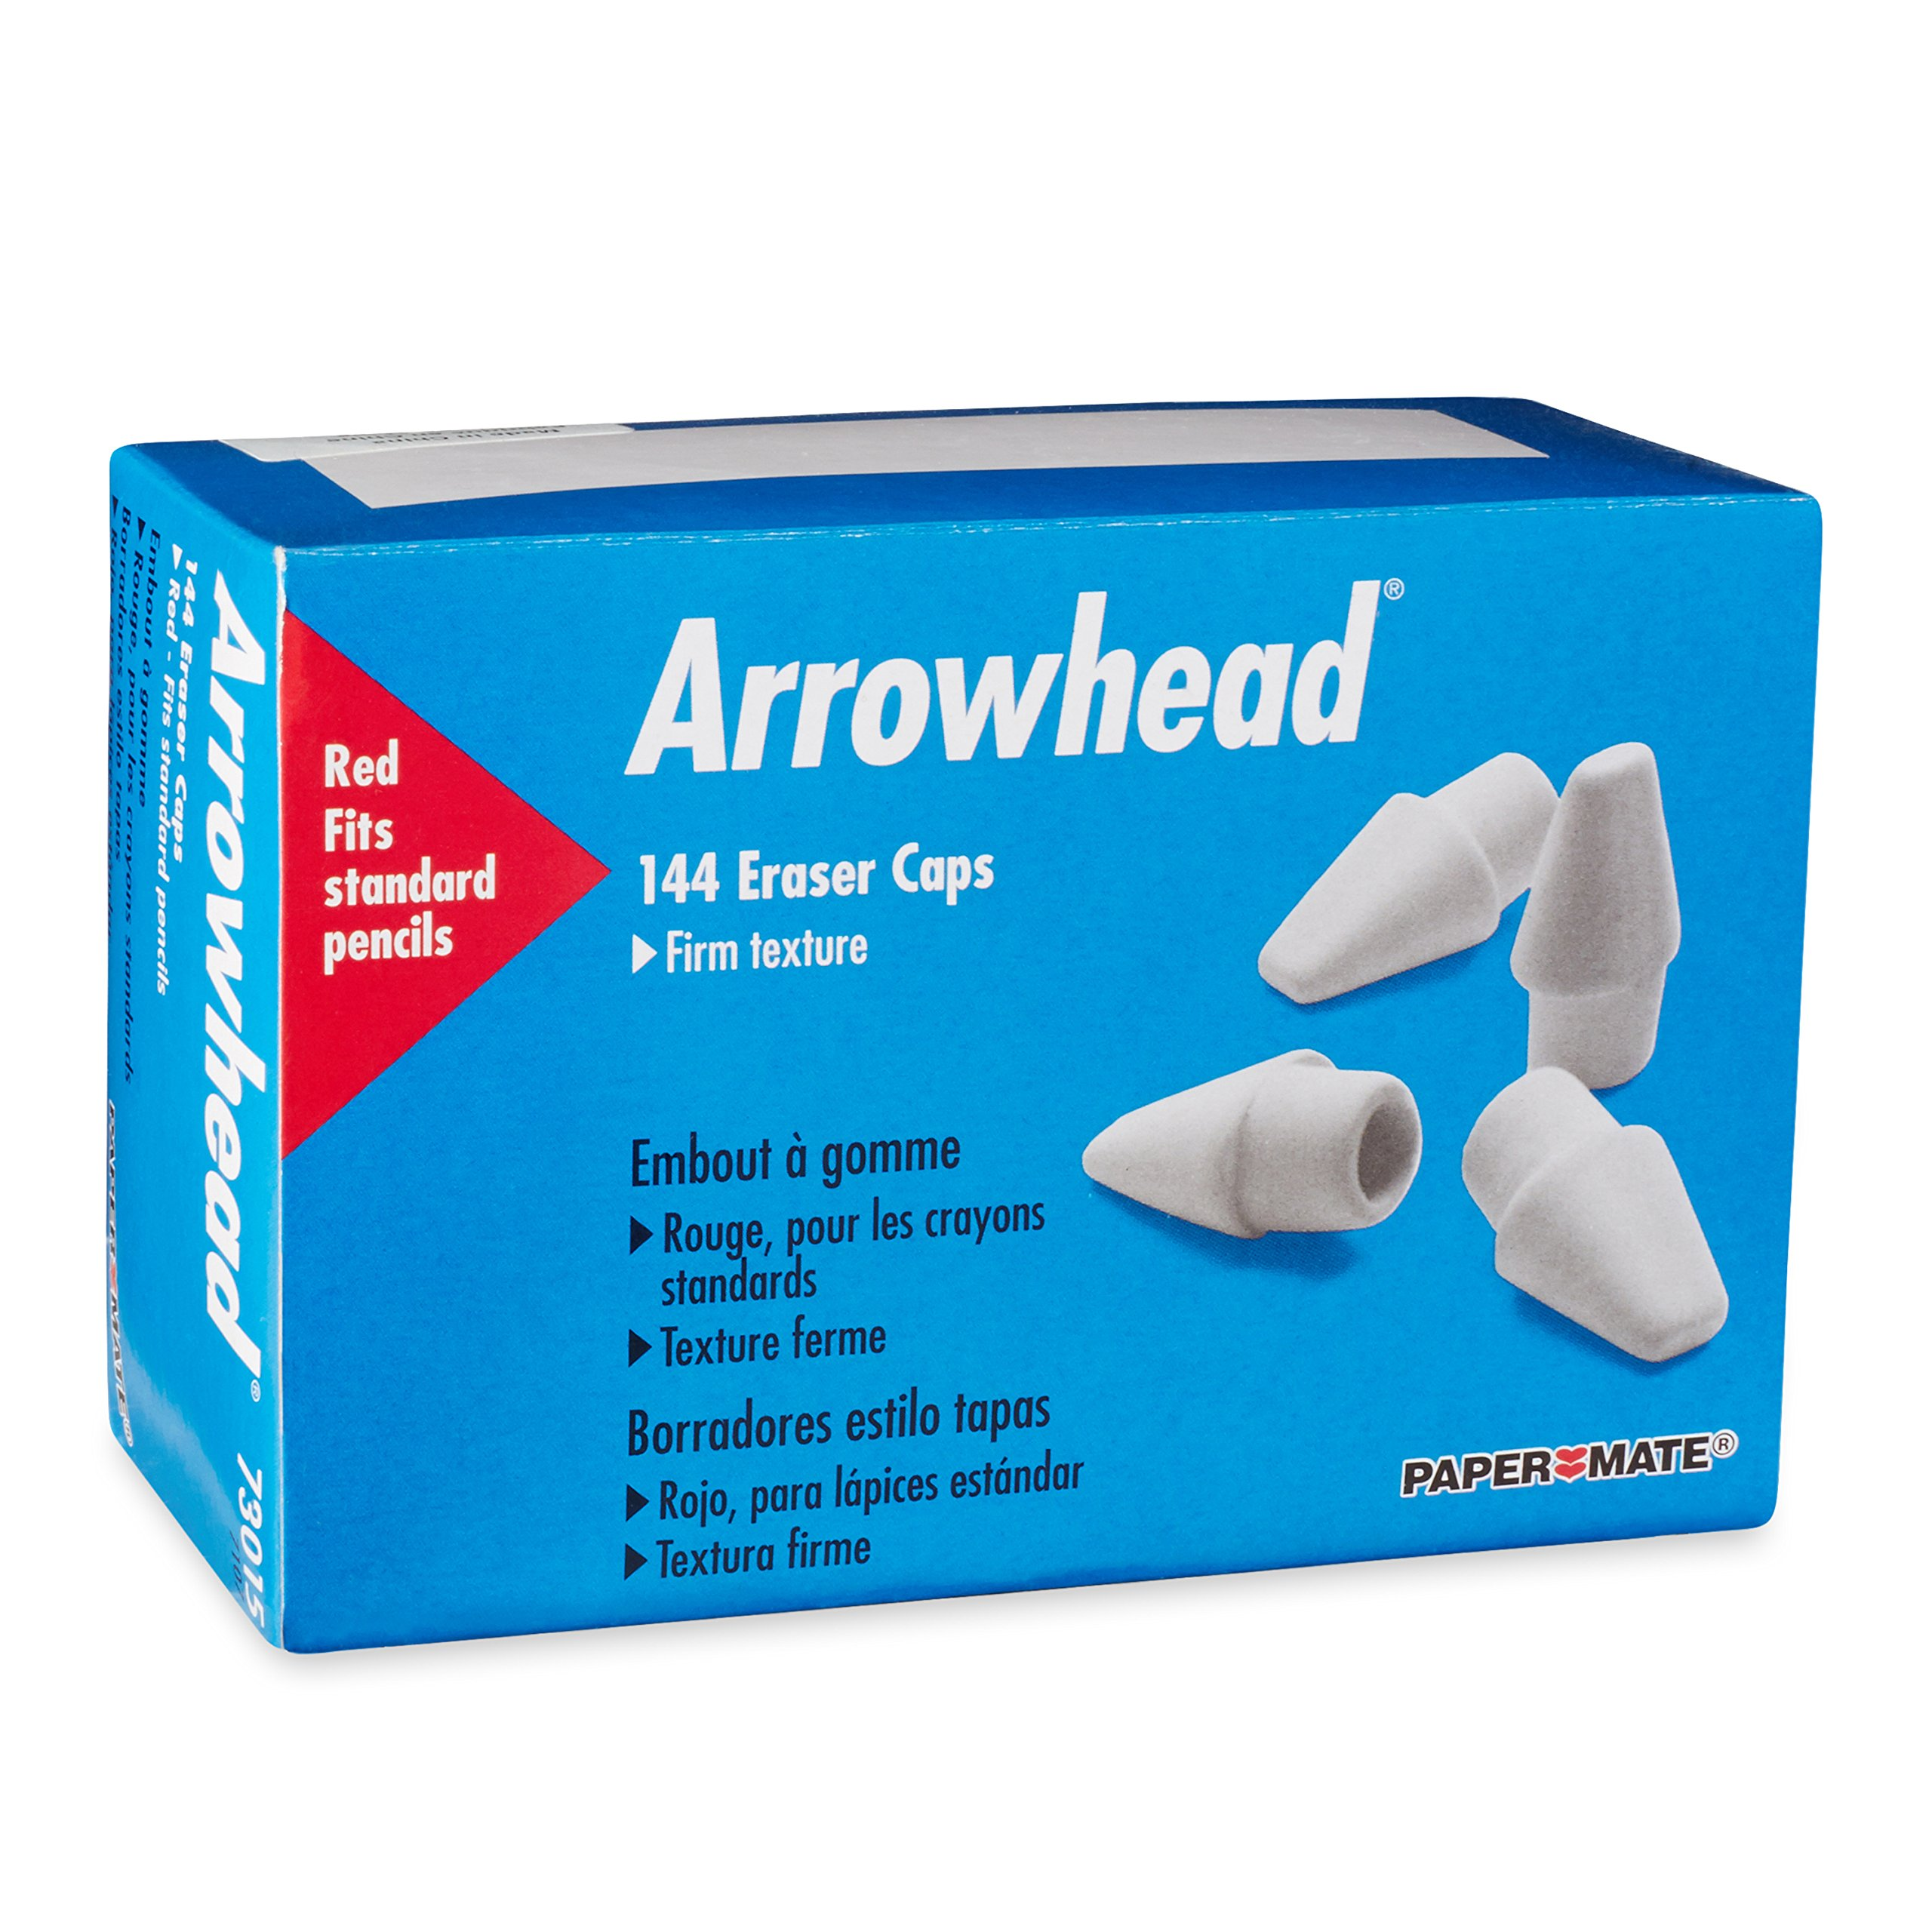 Paper Mate Arrowhead Pink Pearl Cap Erasers, 144 Count by Paper Mate (Image #3)